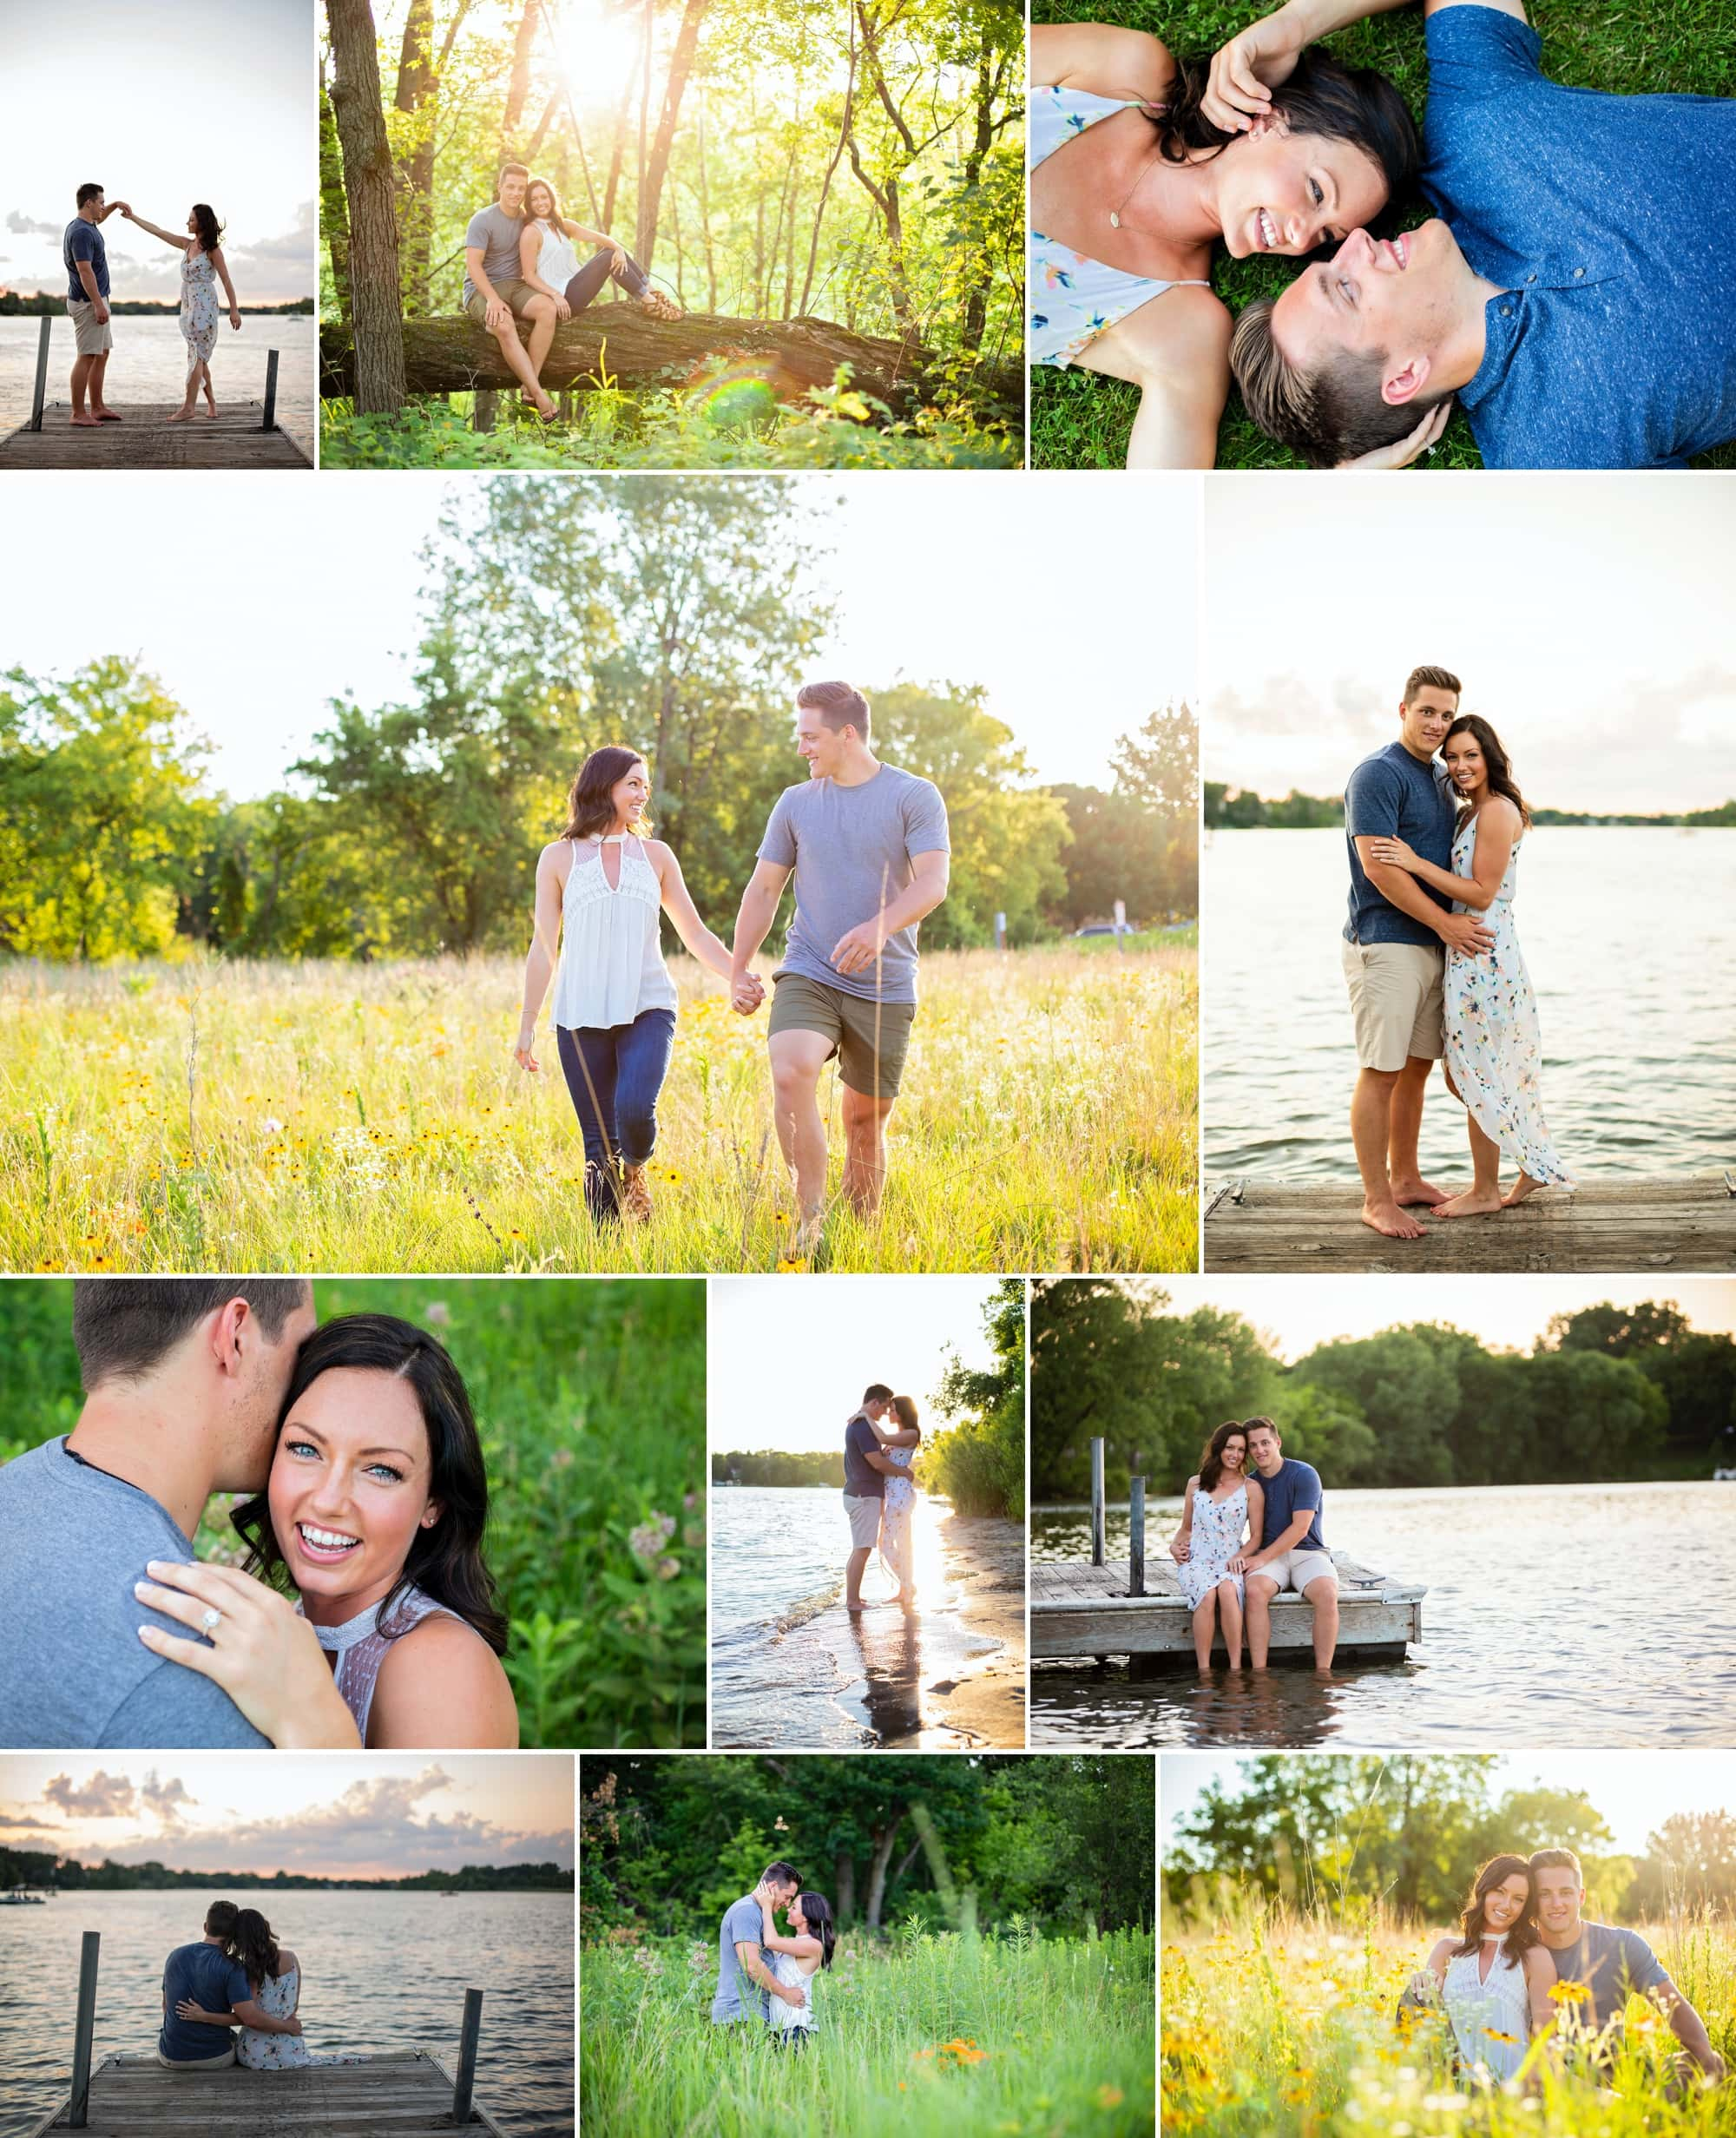 Newly engaged couple poses for a photography session at Long Lake Park in New Brighton, Minnesota.